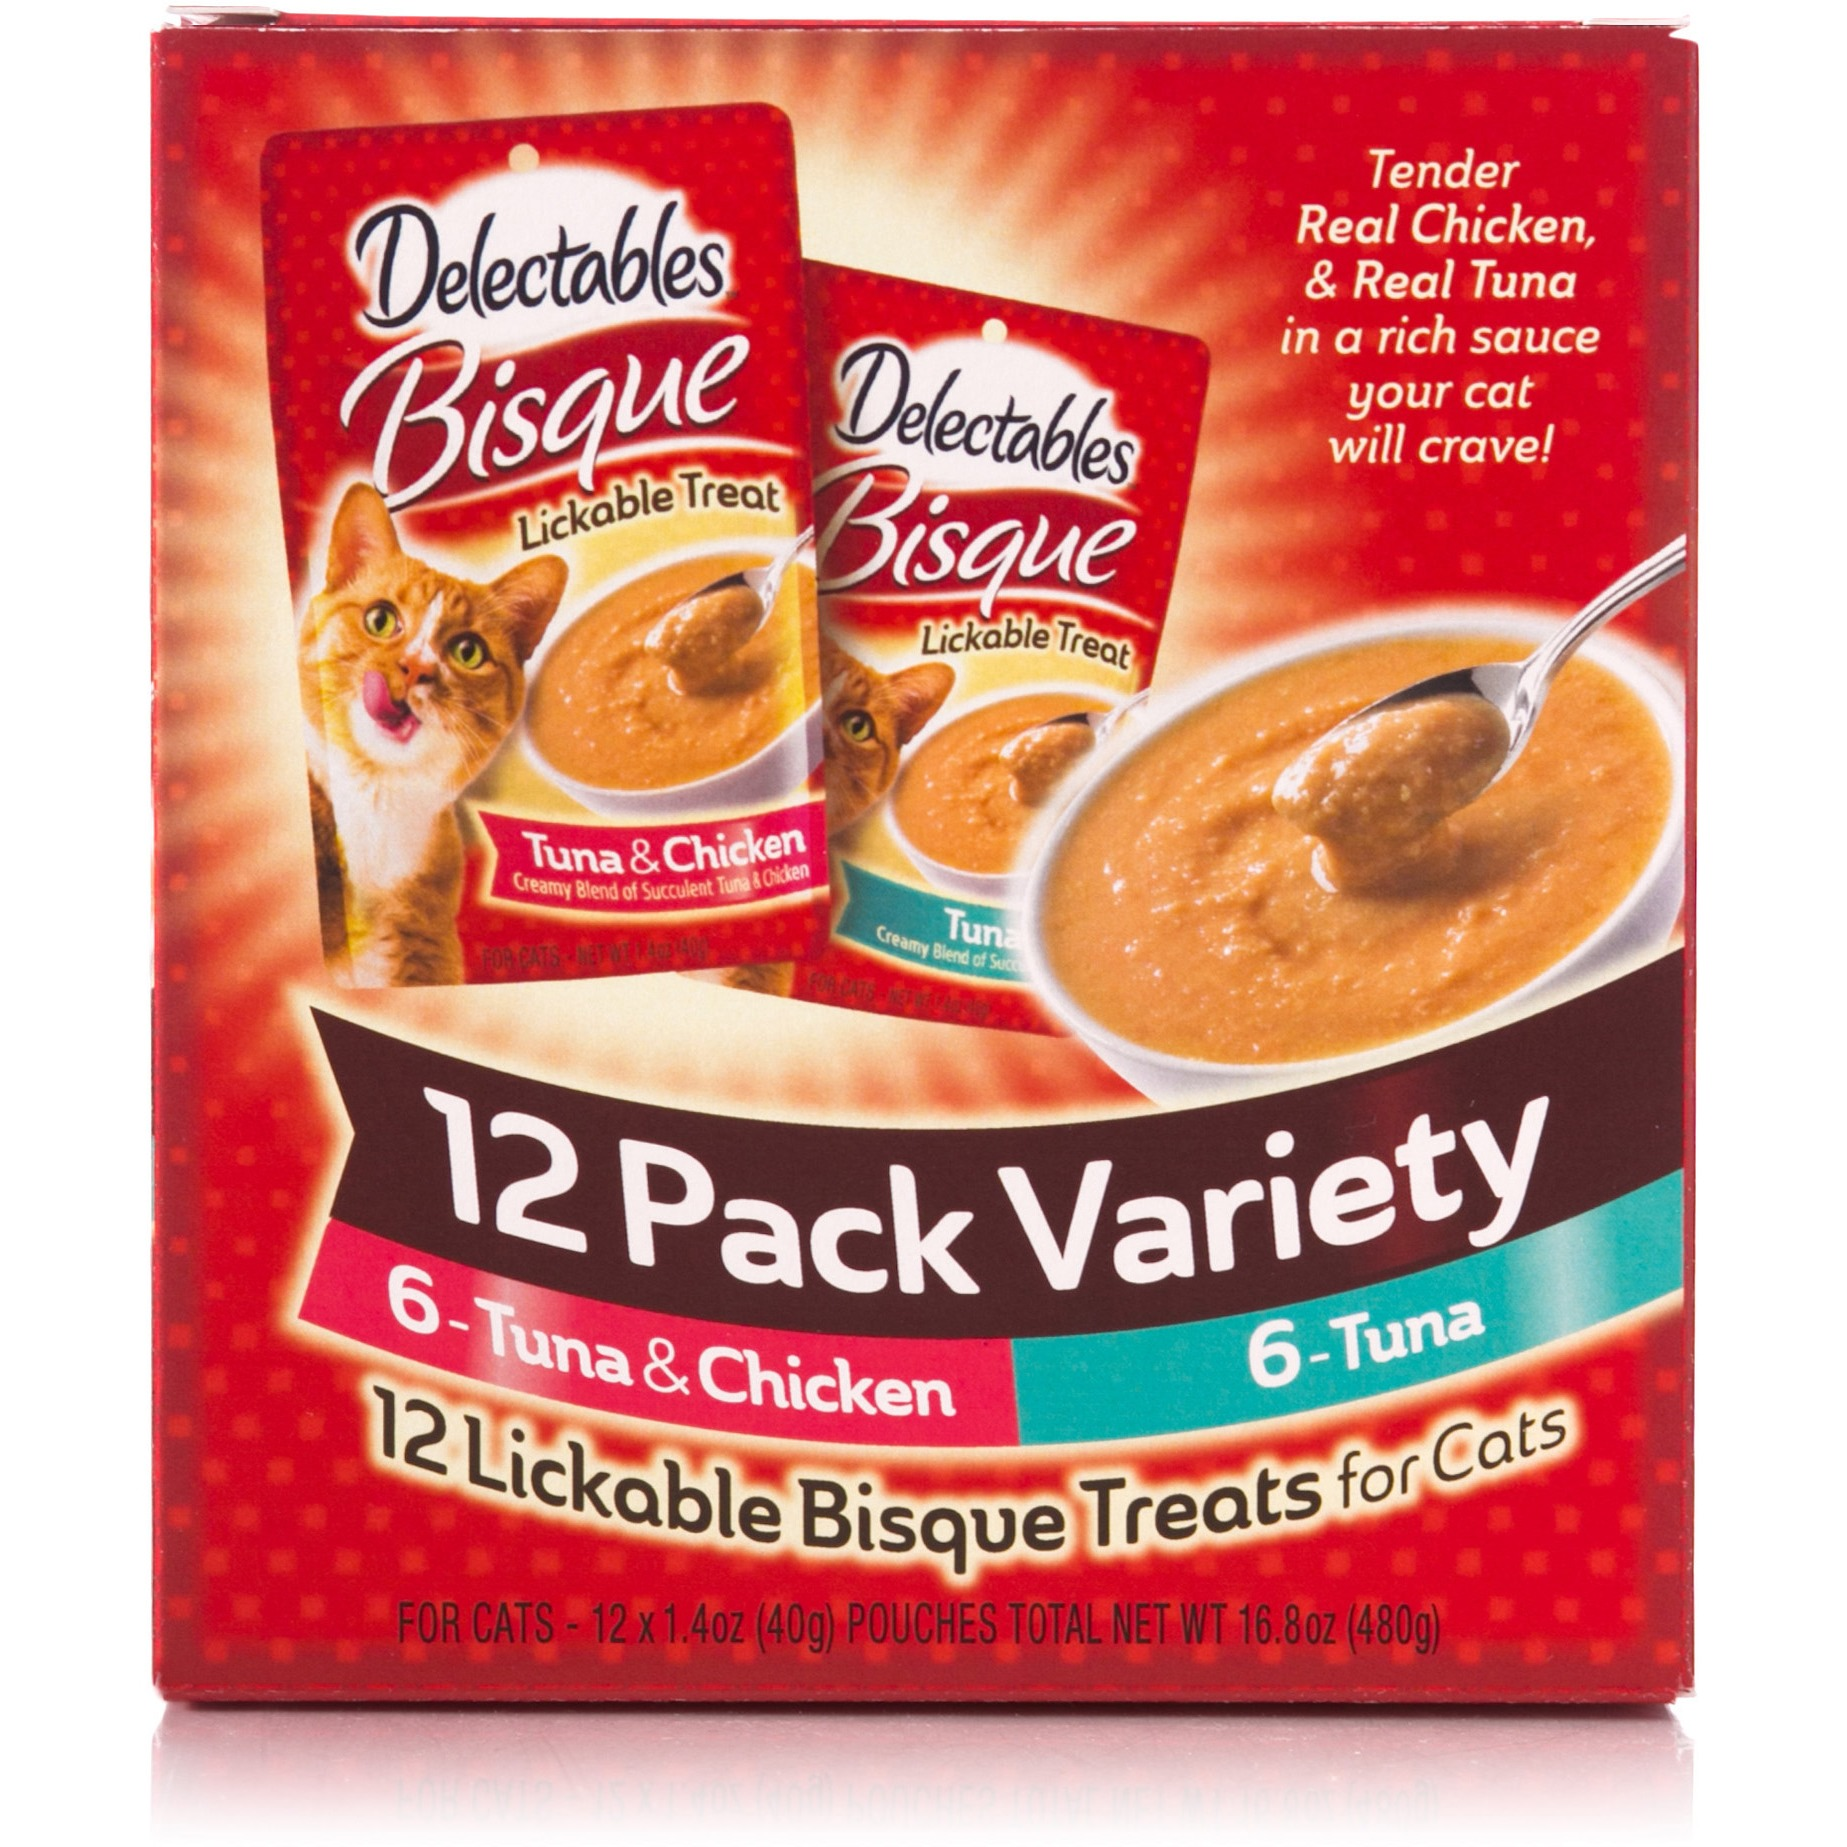 Delectables Lickable Cat Treat Bisque Variety Pack (12 Count) by Hartz Mountain Corp.